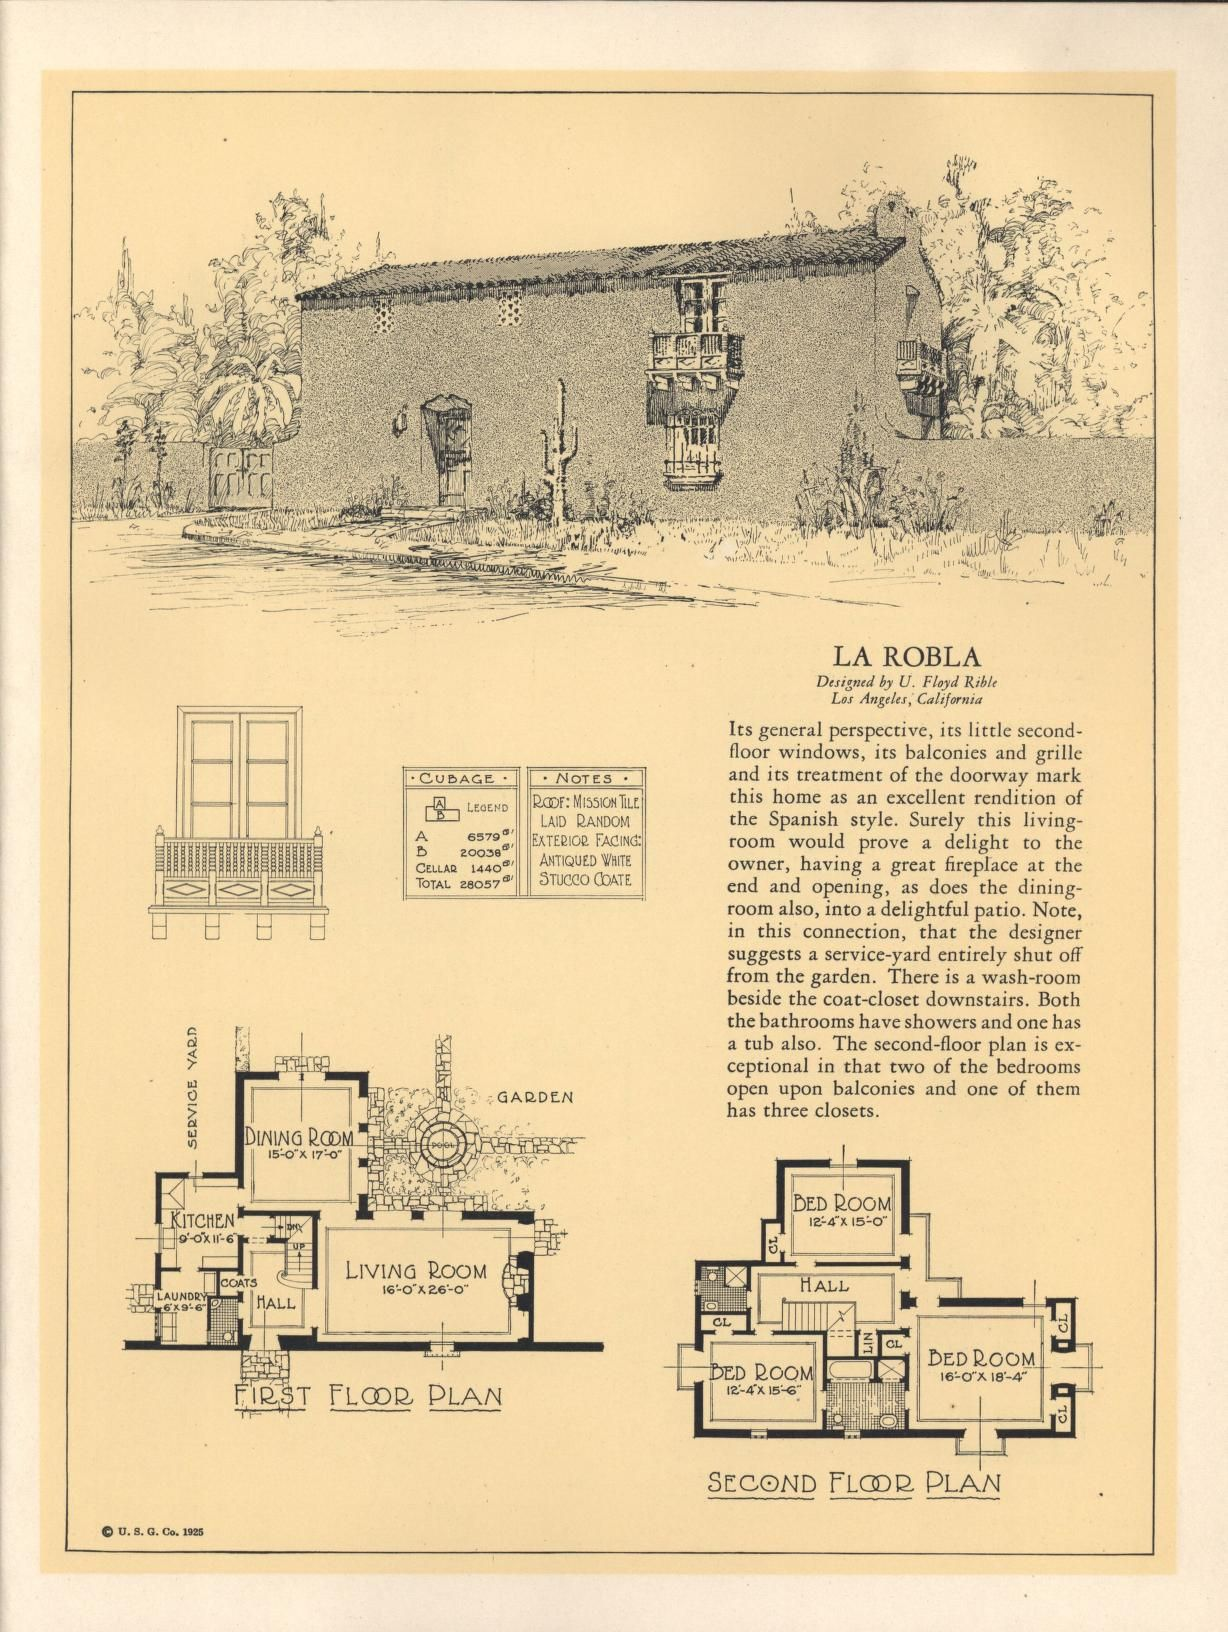 Seventy Two Designs For Fireproof Homes United States Gypsum Co Free Download Borrow A Vintage House Plans Architectural House Plans Spanish Style Homes